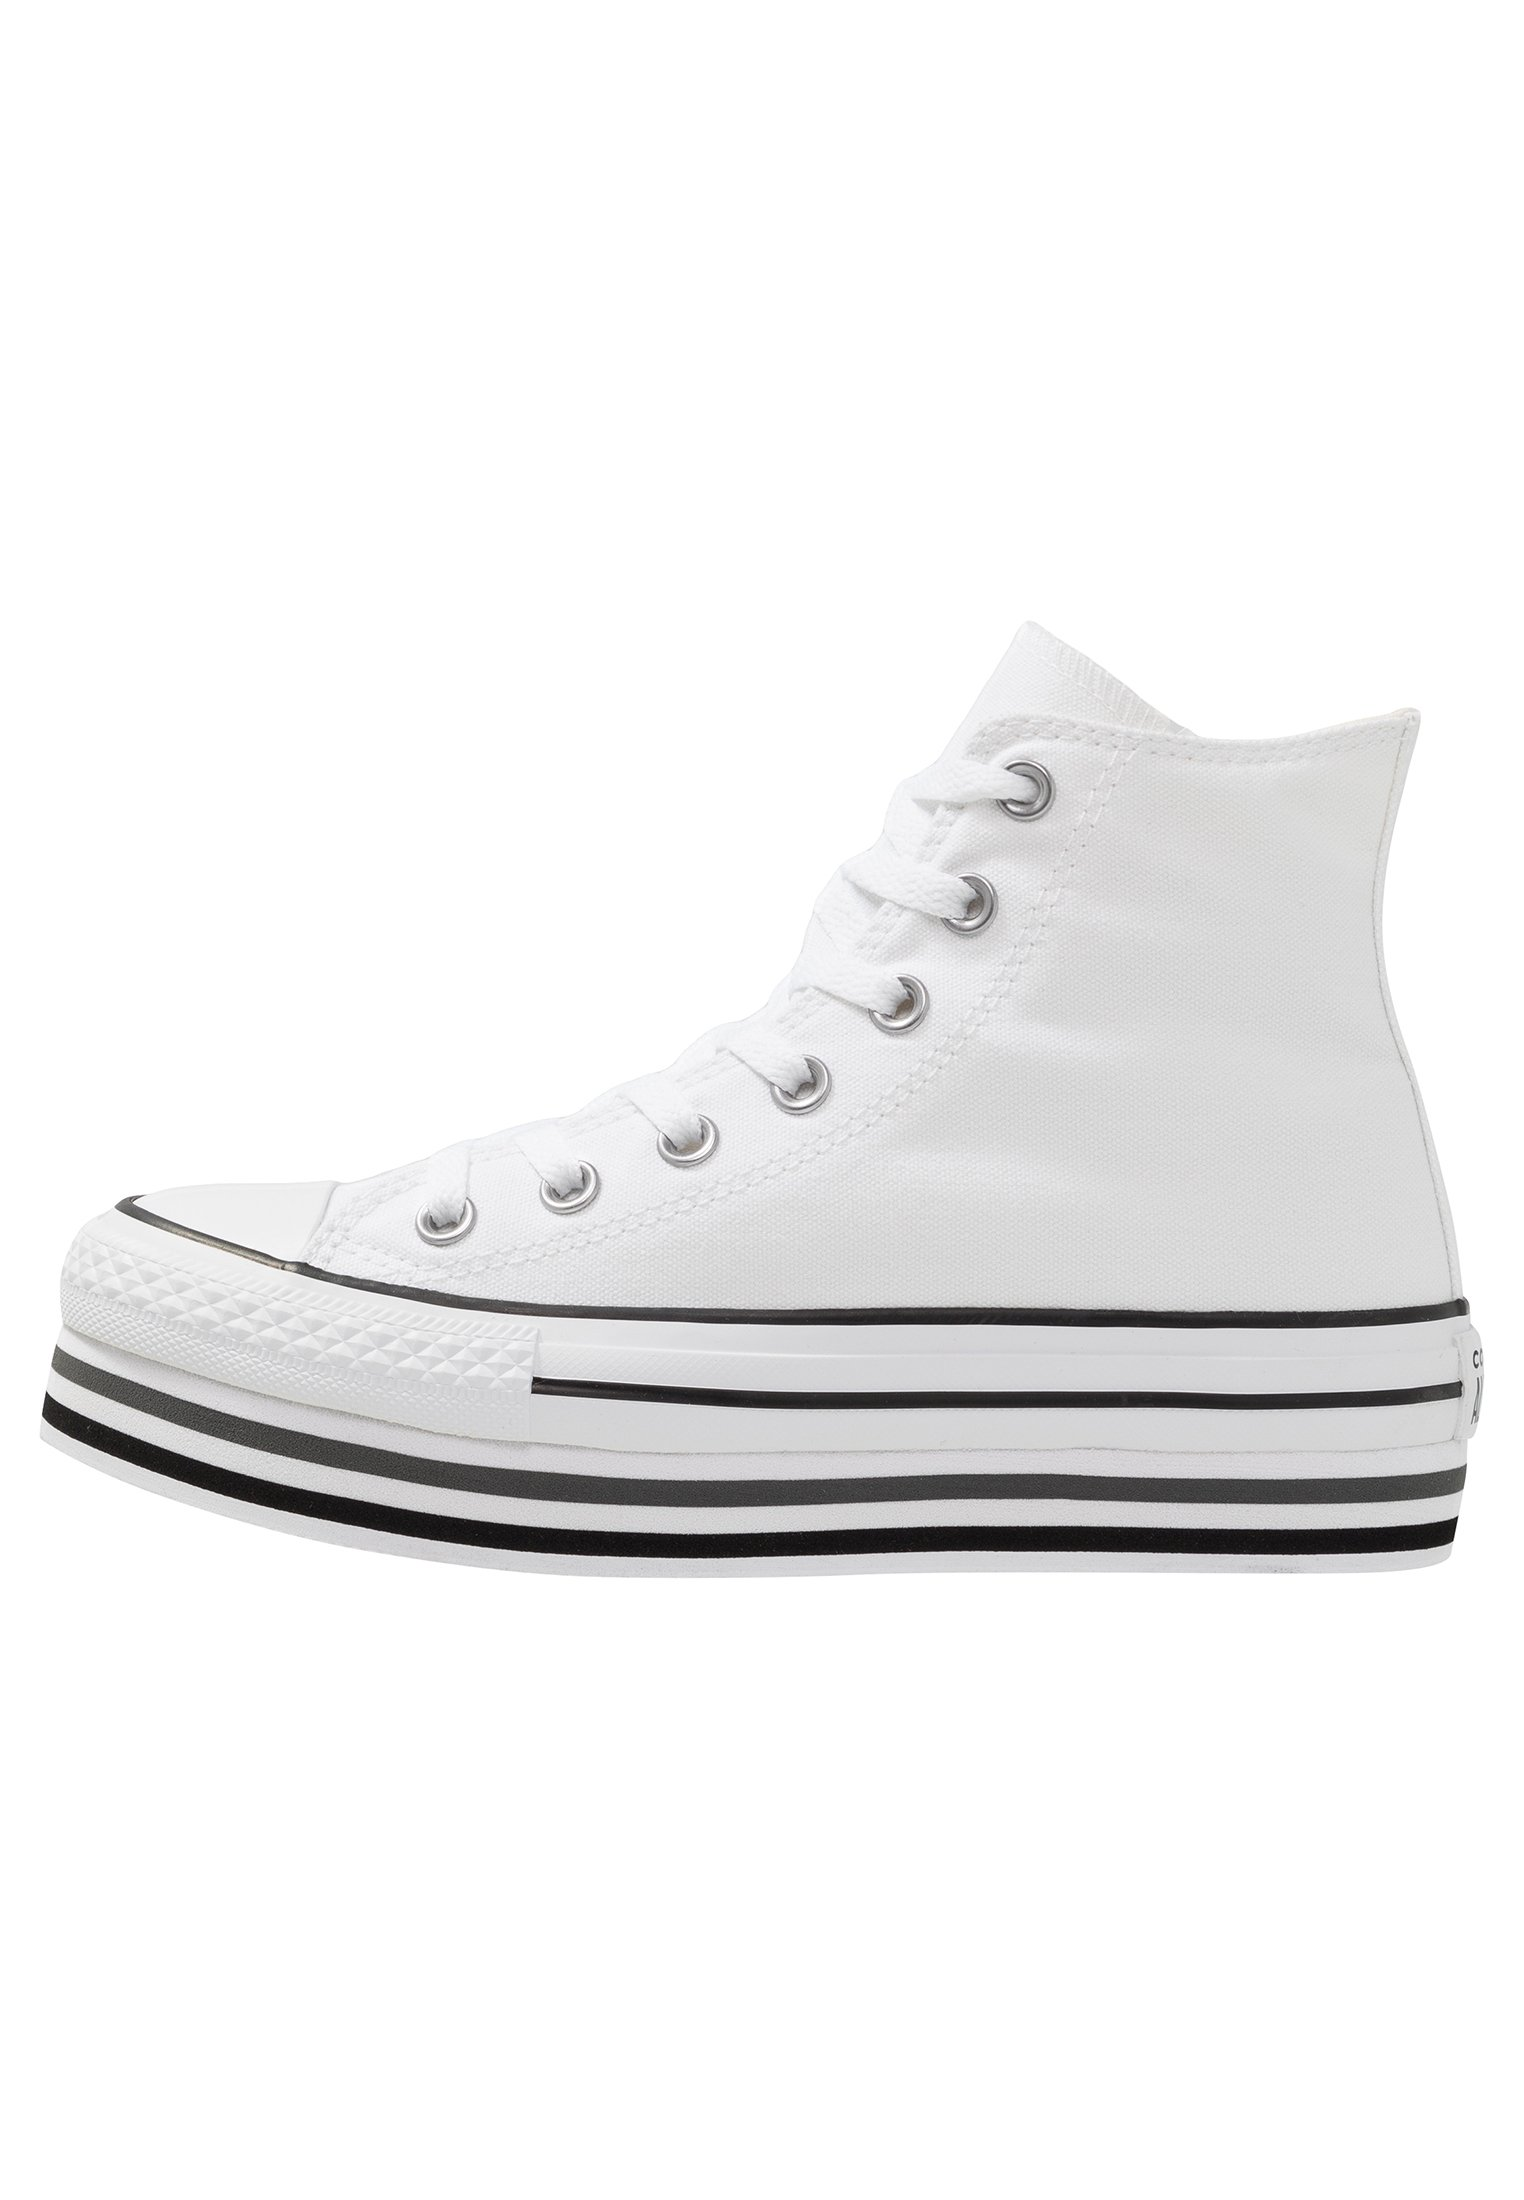 Converse CHUCK TAYLOR ALL STAR PLATFORM Sneakers alte